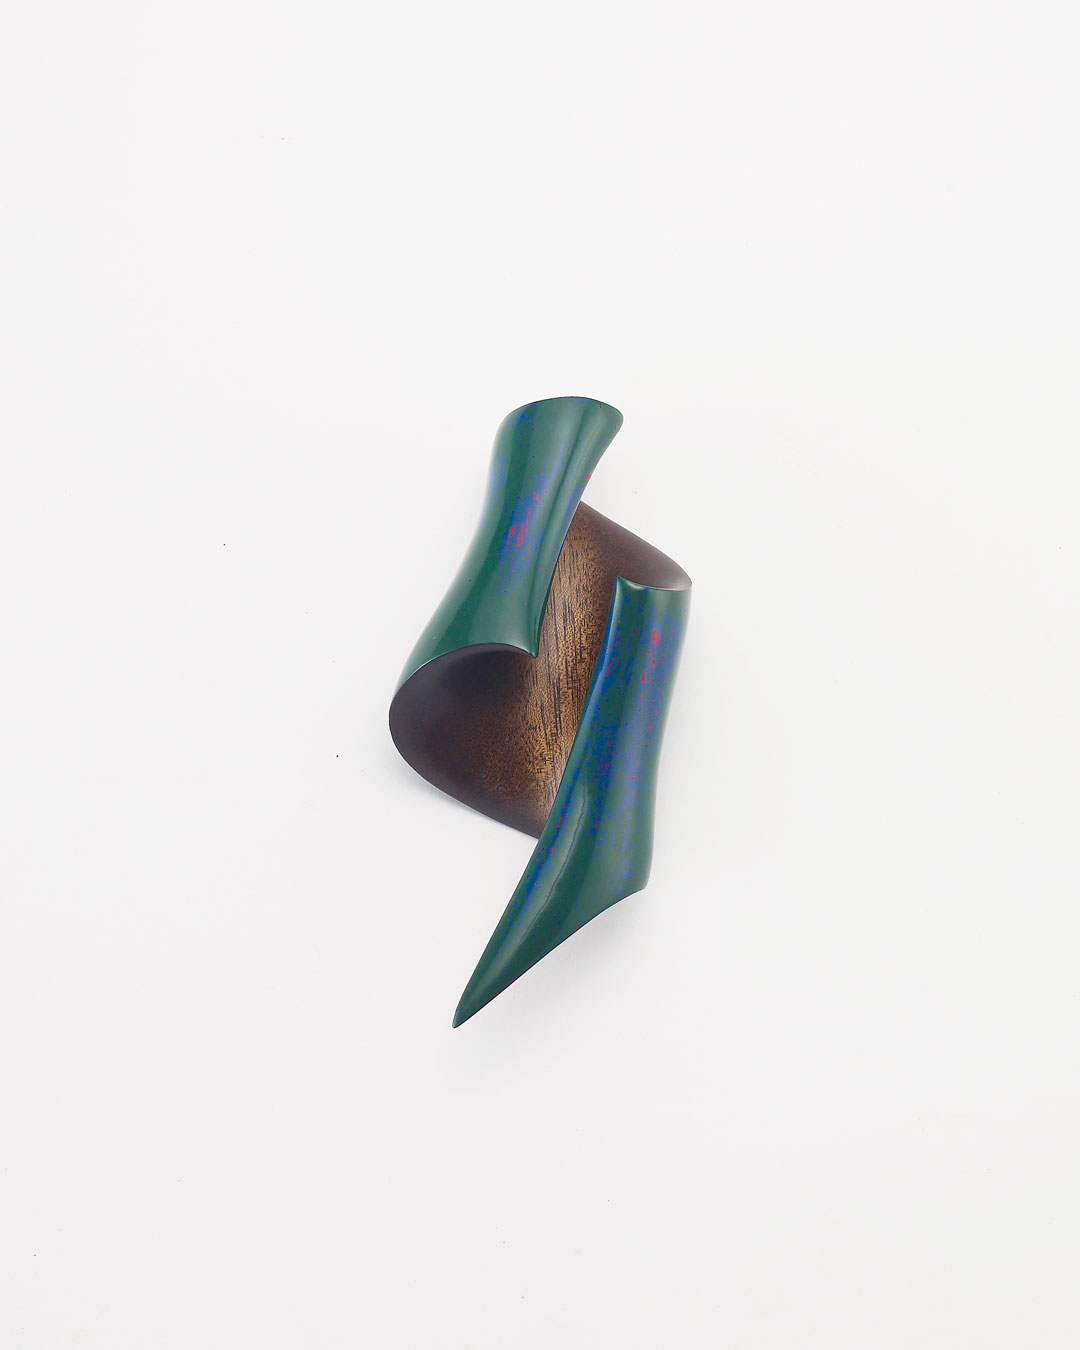 Joo Hyung Park, Confluence 5, 2018, brooch; Chinaberry wood, ottchil (lacquer), silver, 155 x 63 x 40 mm, €975